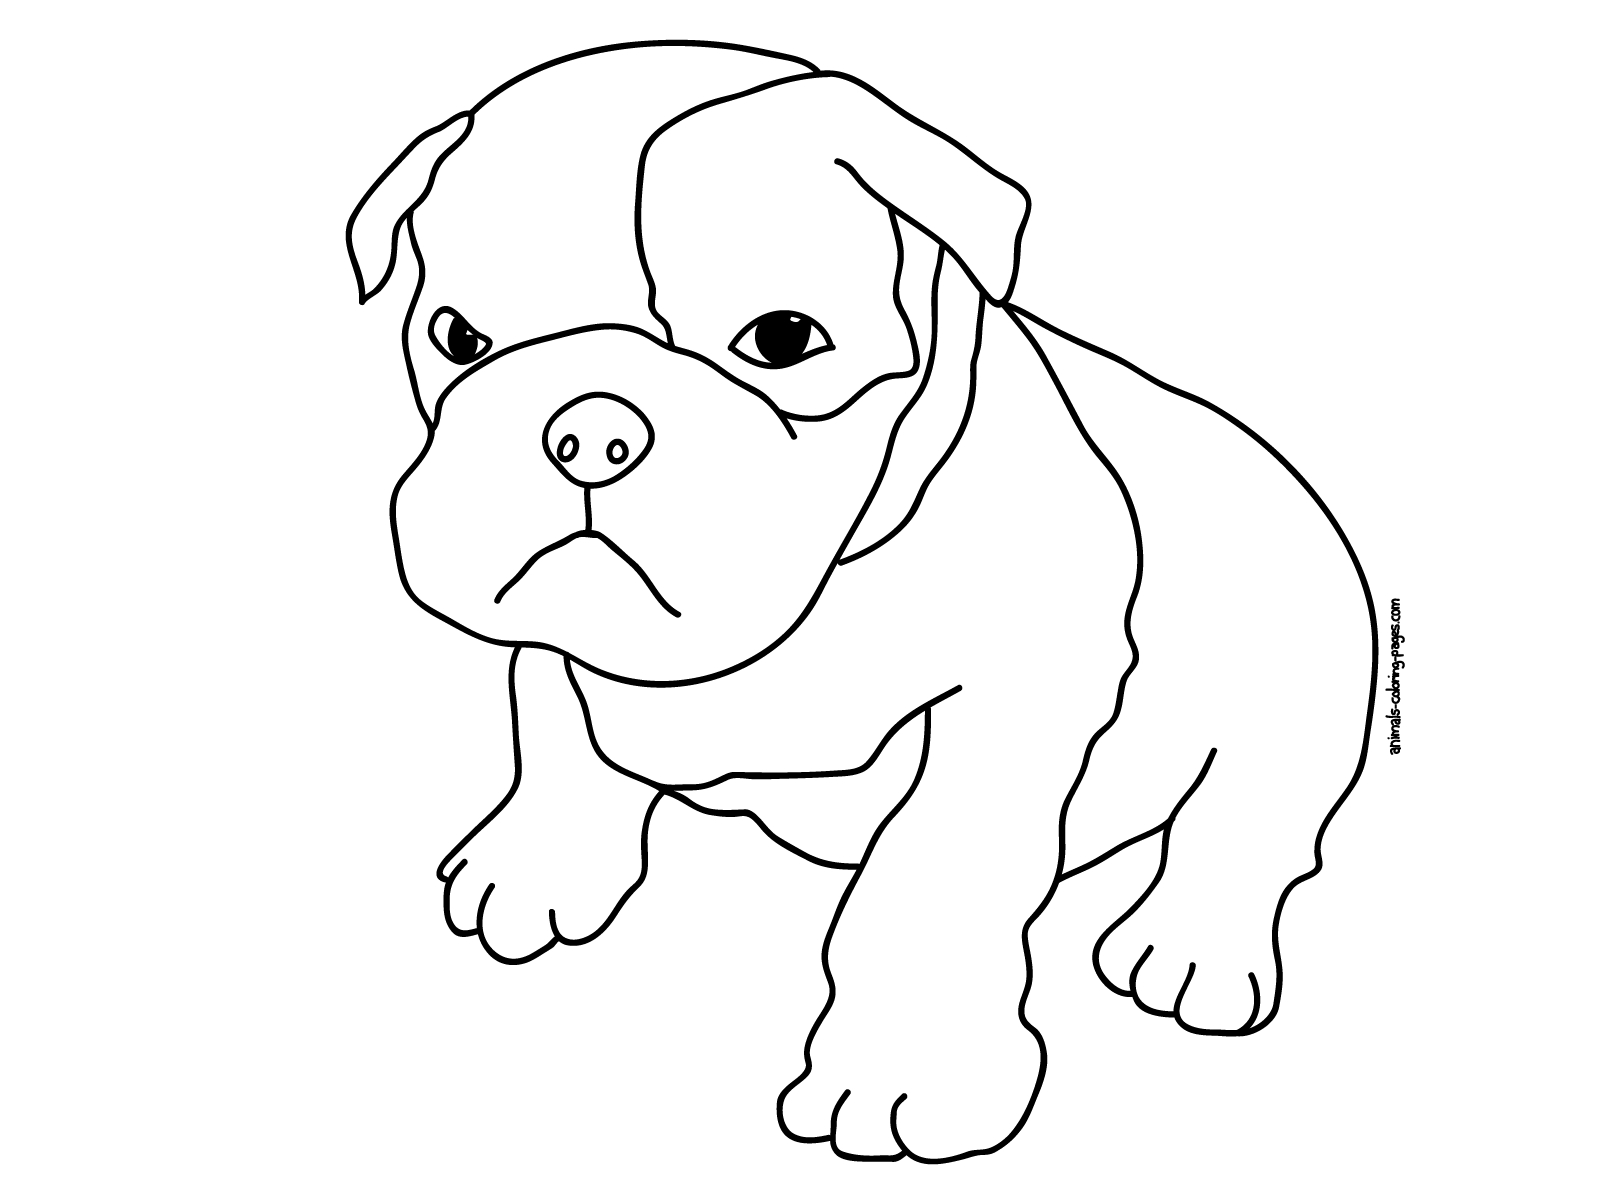 Free Coloring Pages Of Eyed Animals | Sewing | Dog Coloring Page - Colouring Pages Dogs Free Printable